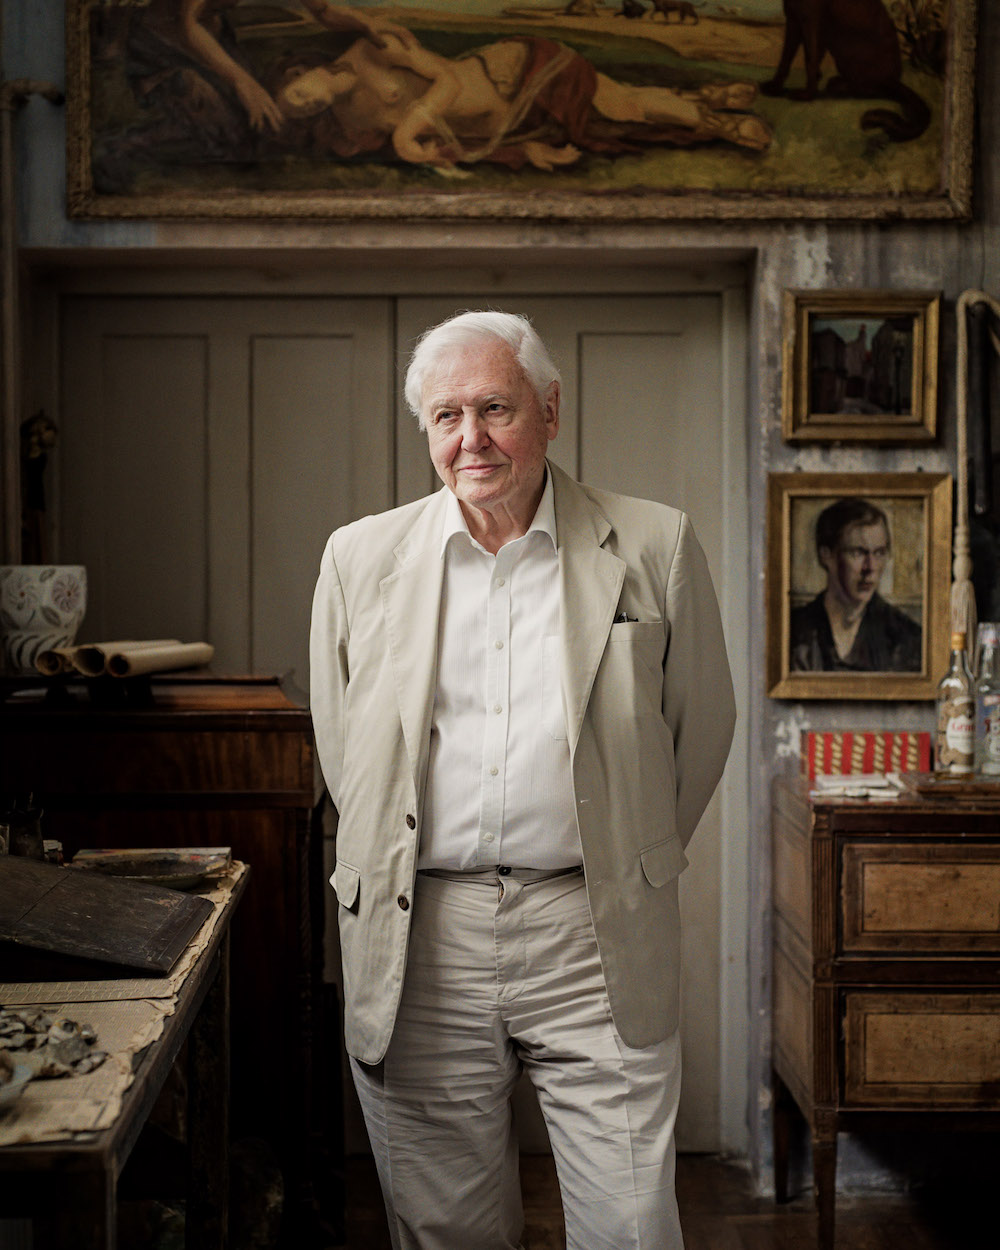 David_Attenborough_0079-1.jpg